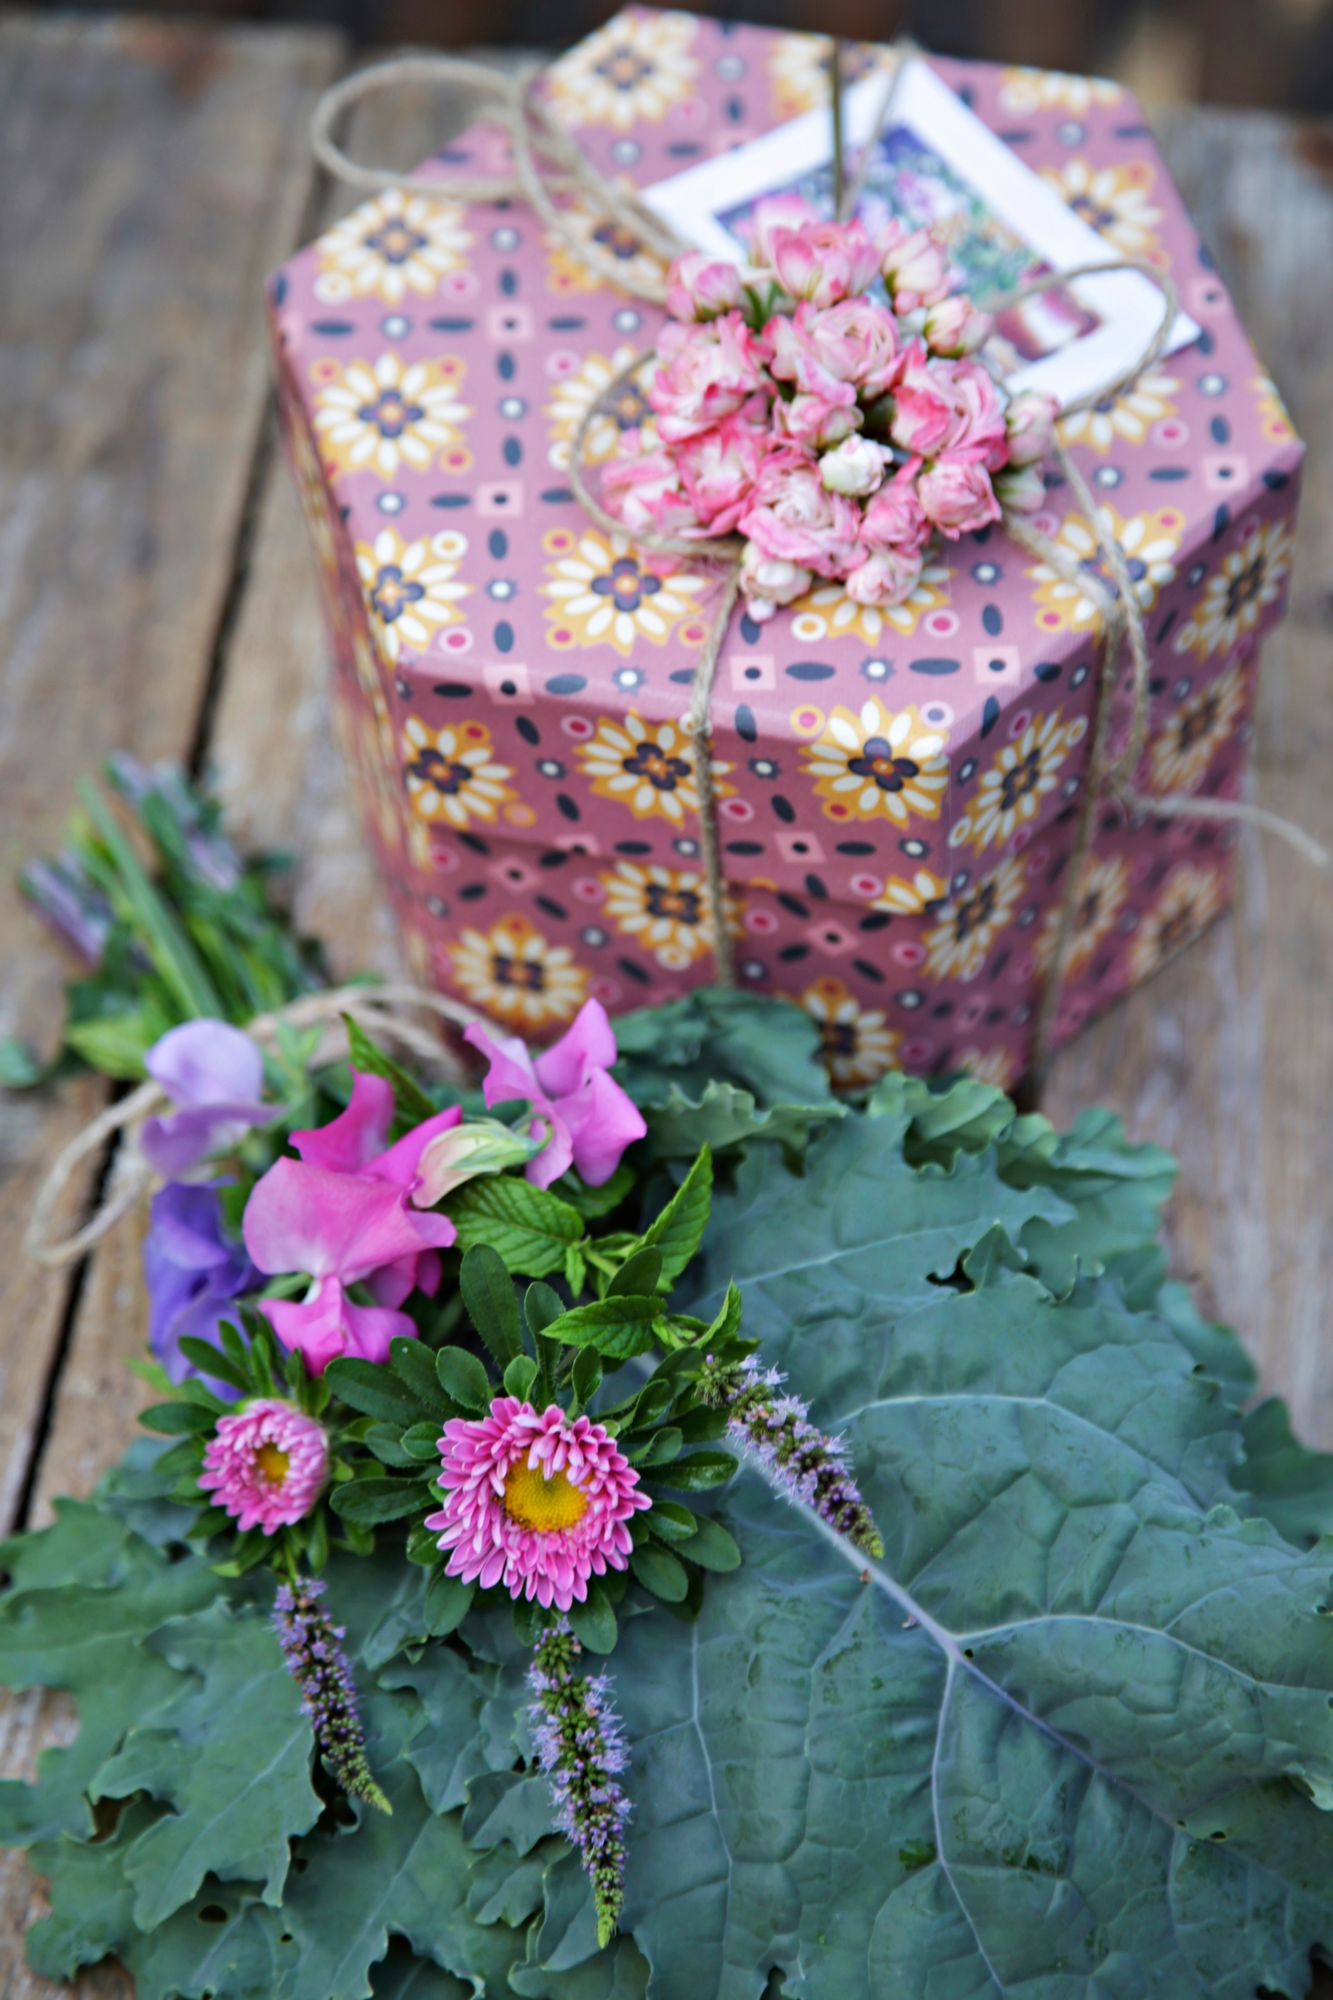 Tie a bouquet of gifts from the self-grown flowers.  Also use vegetable leaves and herbs to bring fragrance.